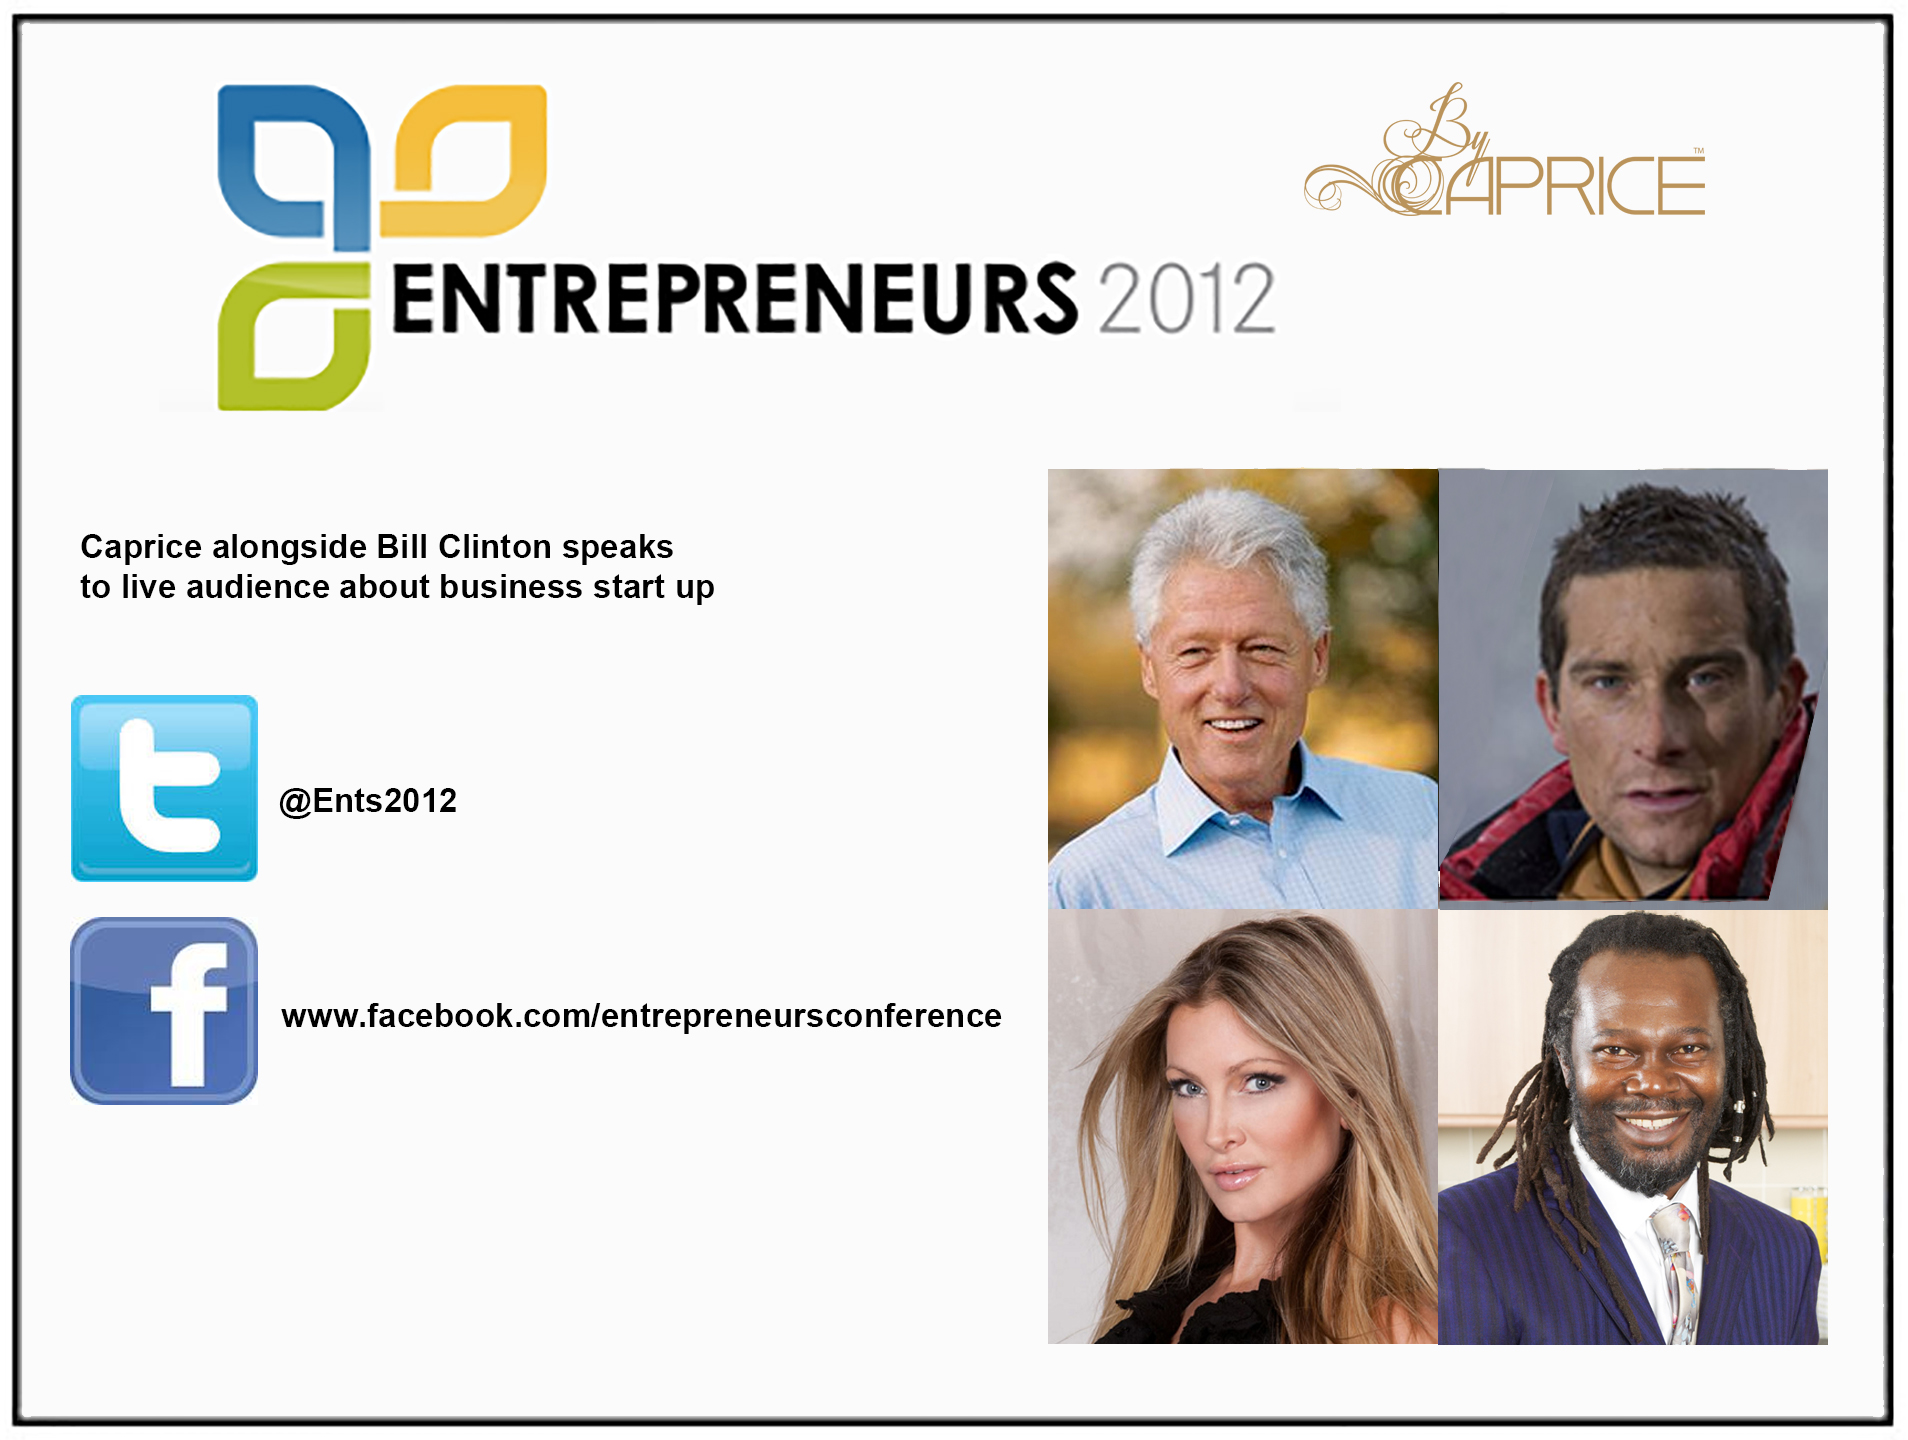 EXCEL LONDON ENTREPRENEUR - London Excel Main Stage, 2012 Miss Bourret was one of the expert speakers alongside President Bill Clinton.2012